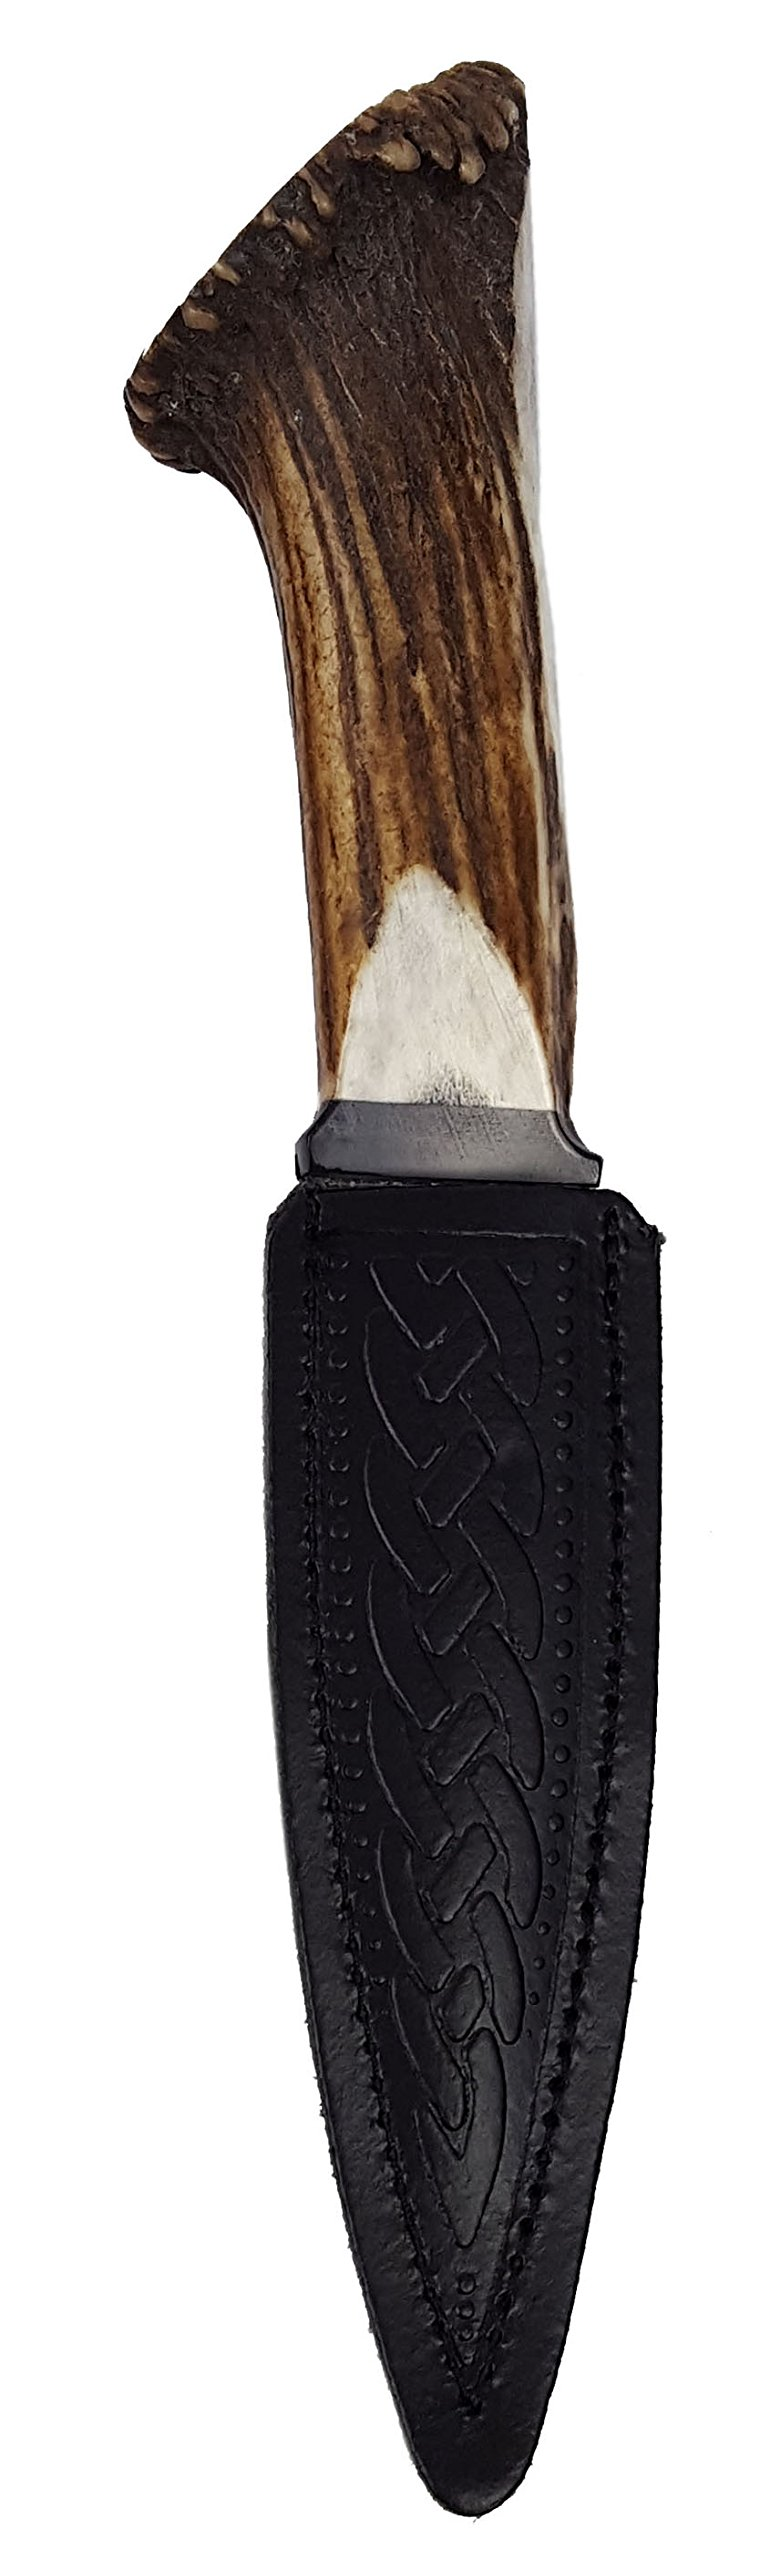 Genuine Full Crown Stag Horn Sgian Dubh with Stainless Steel Blade